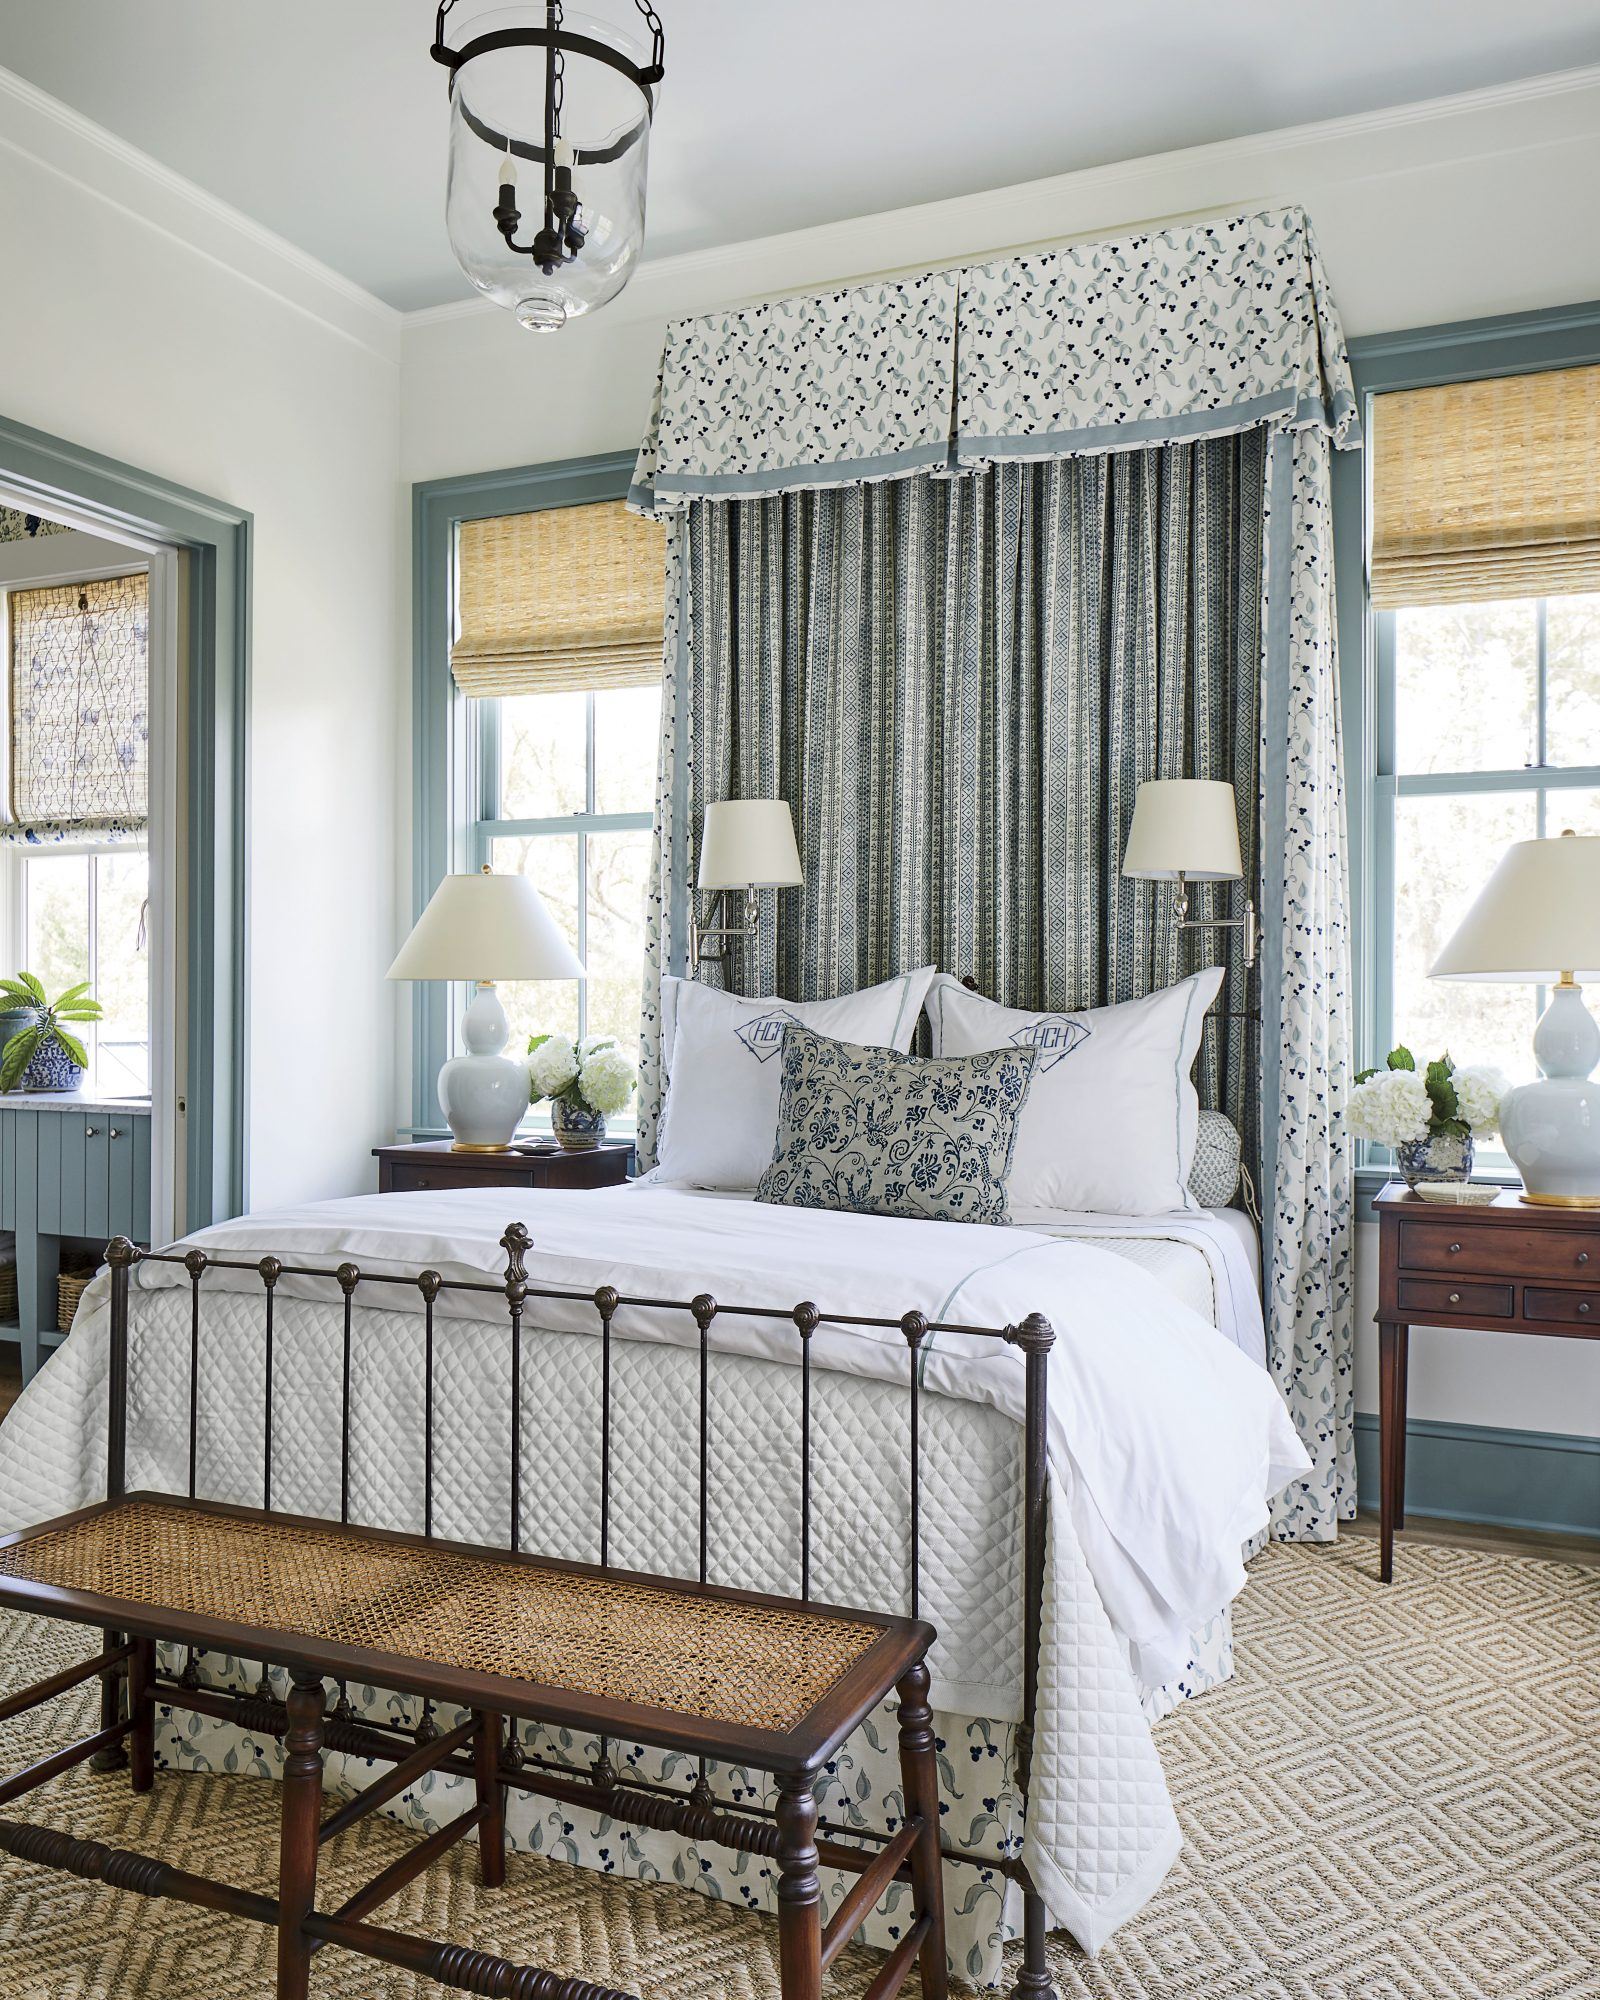 2019 Idea House Queen Guest Bedroom